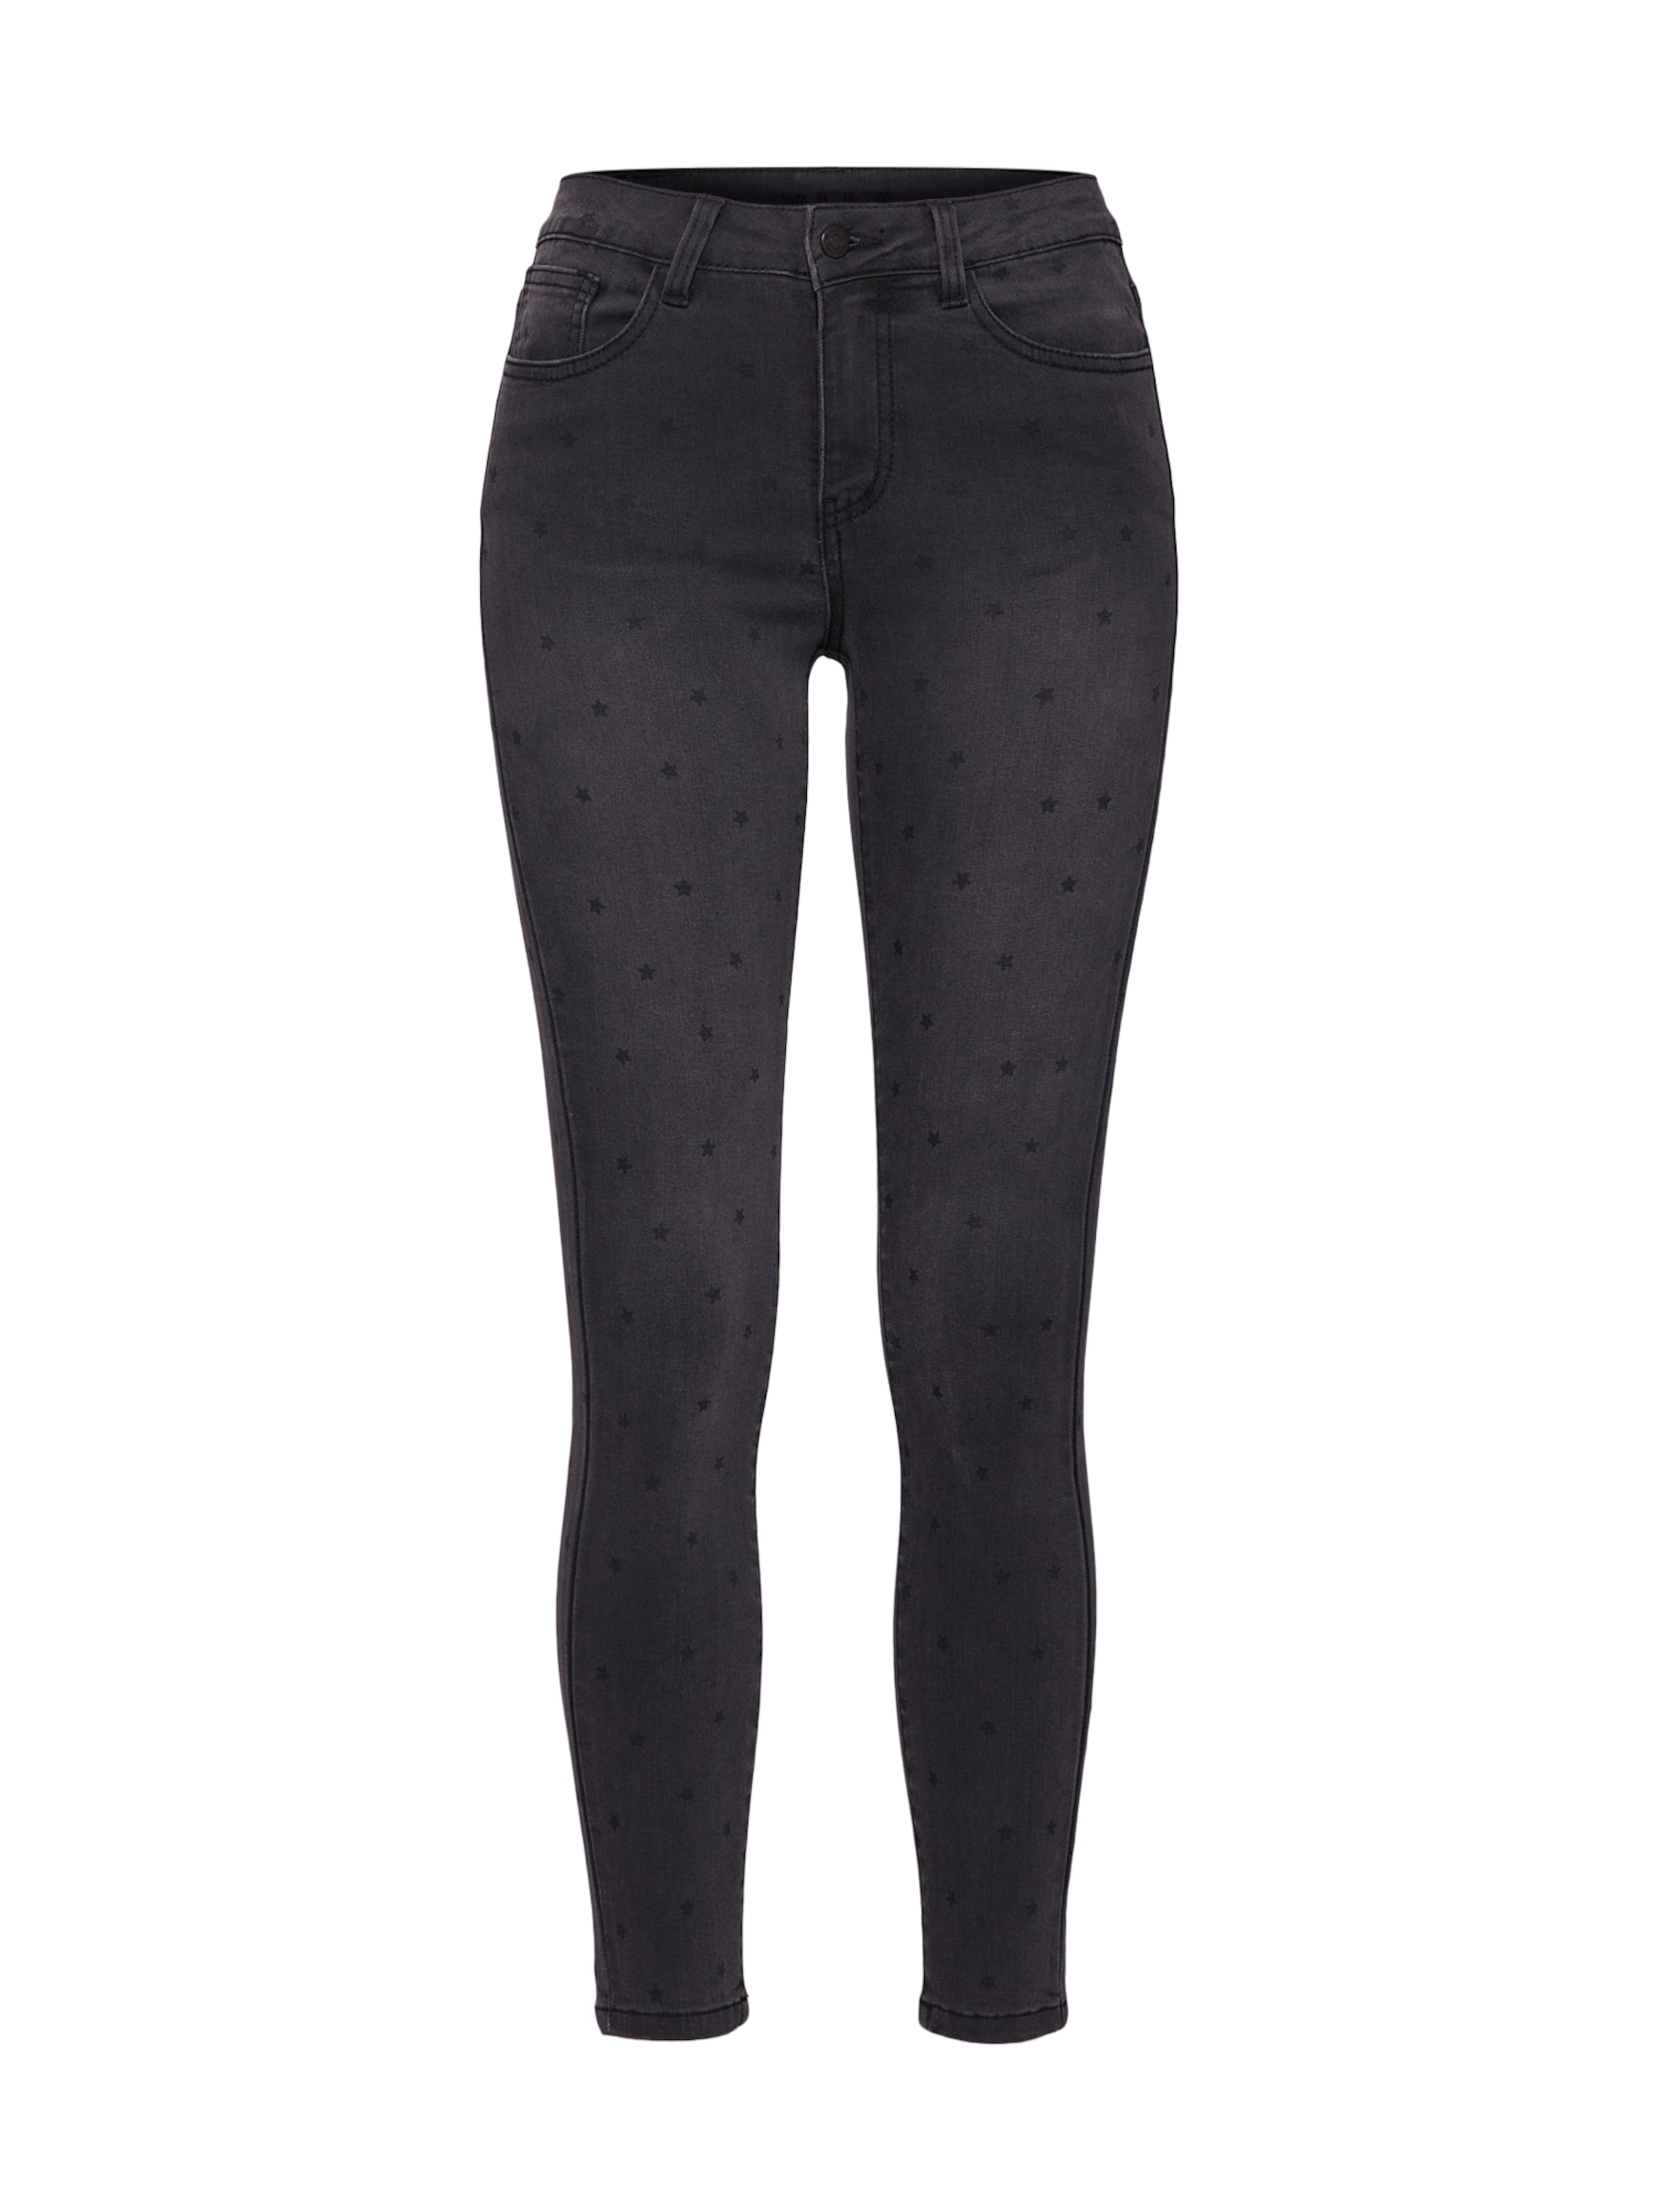 8 Rw 'vicommit Grey Jeans Star Denim Jeans' In 7 Vila 0wX8PnkNO